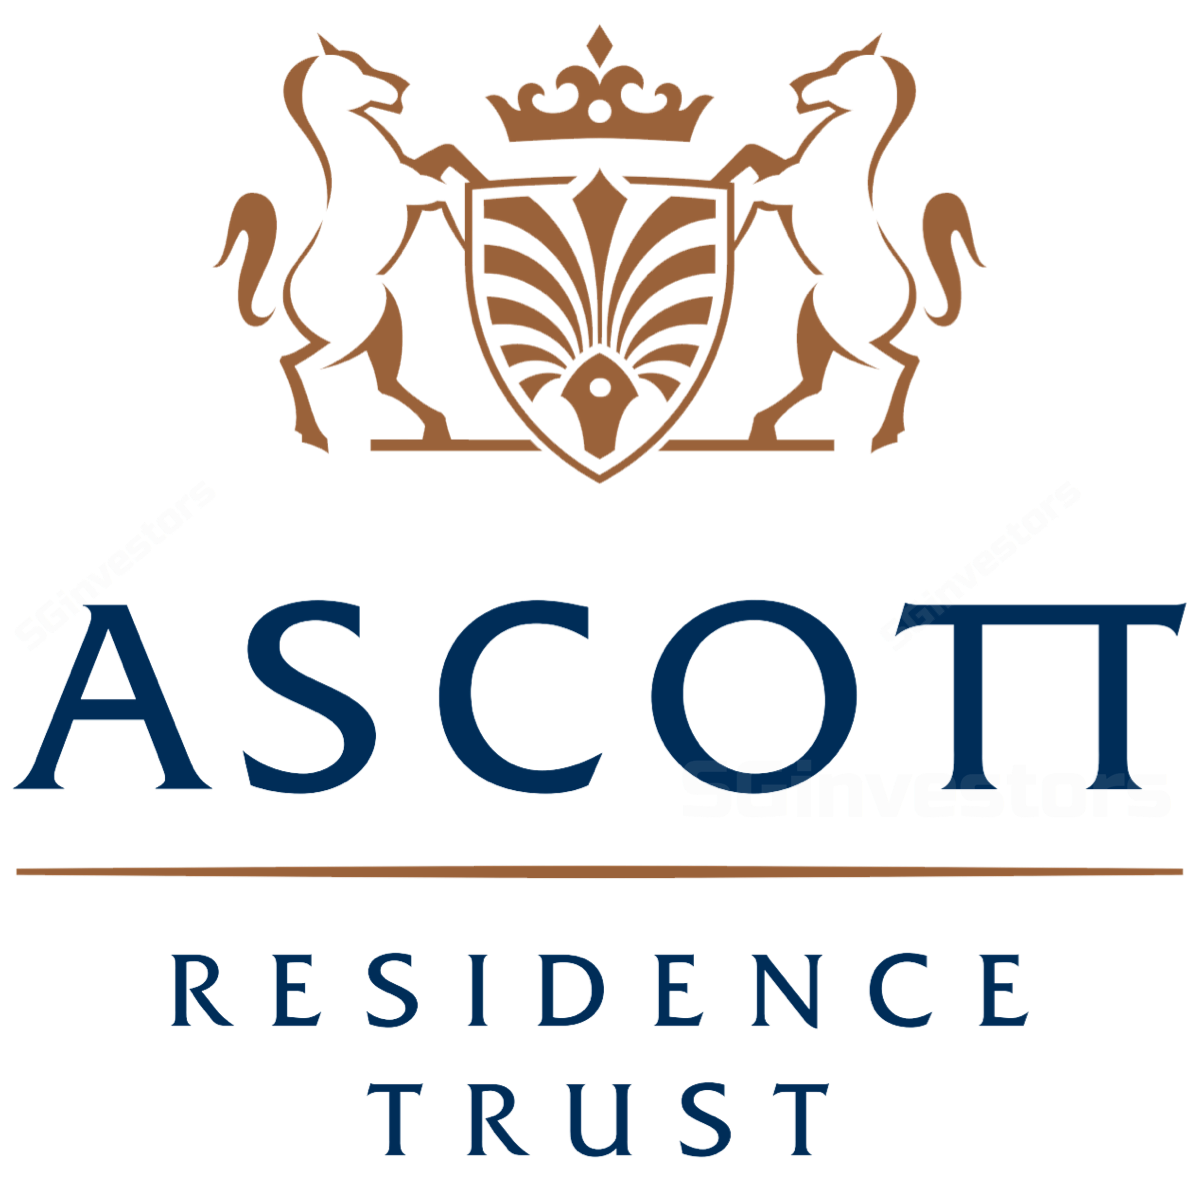 Ascott Residence Trust - OCBC Investment Research 2018-07-25: Sorry, I'm Checking Out For Now